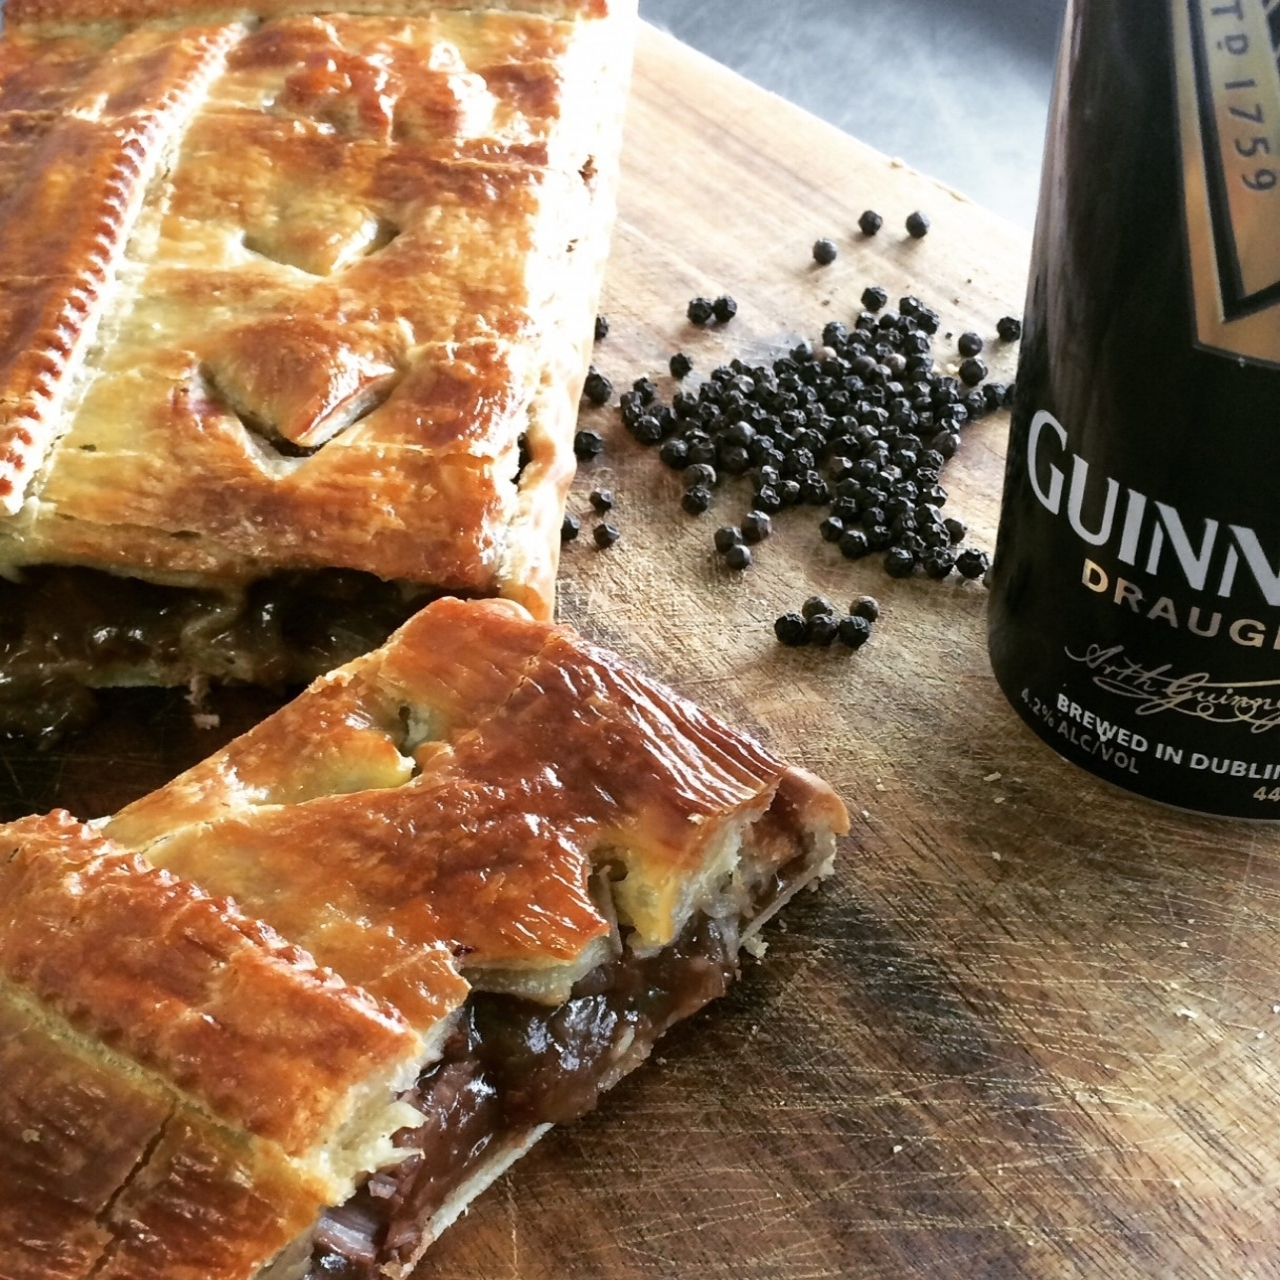 Peppered Beef & Stout Pies     Retail -Large family sized Pies, Small twin pack pies  Cafe/Deli -Individual small pies